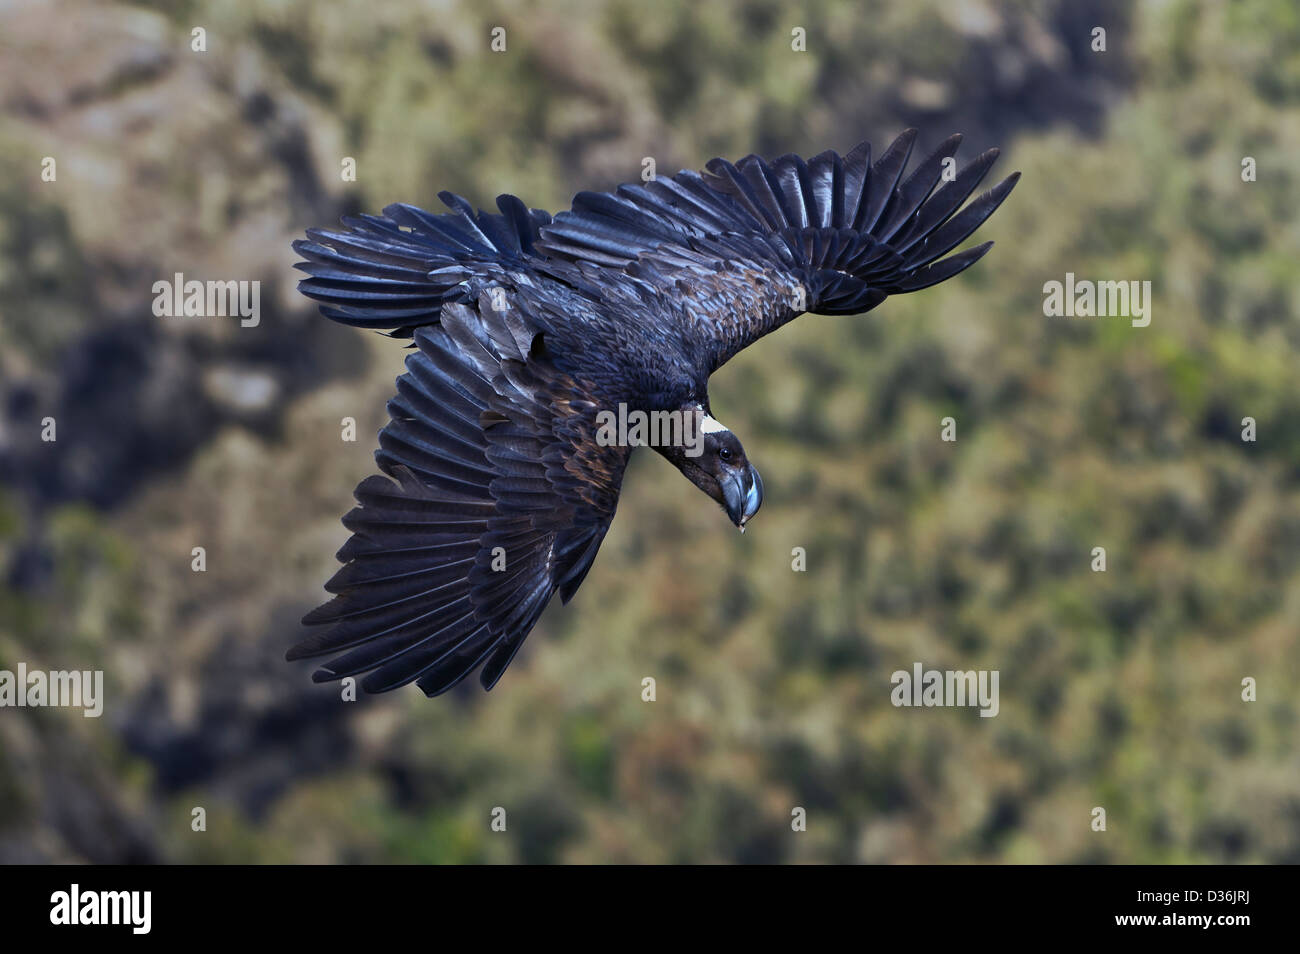 a Thick-billed Raven on the wing, Corvus crassirostris, Simien mountains, Ethiopia - Stock Image